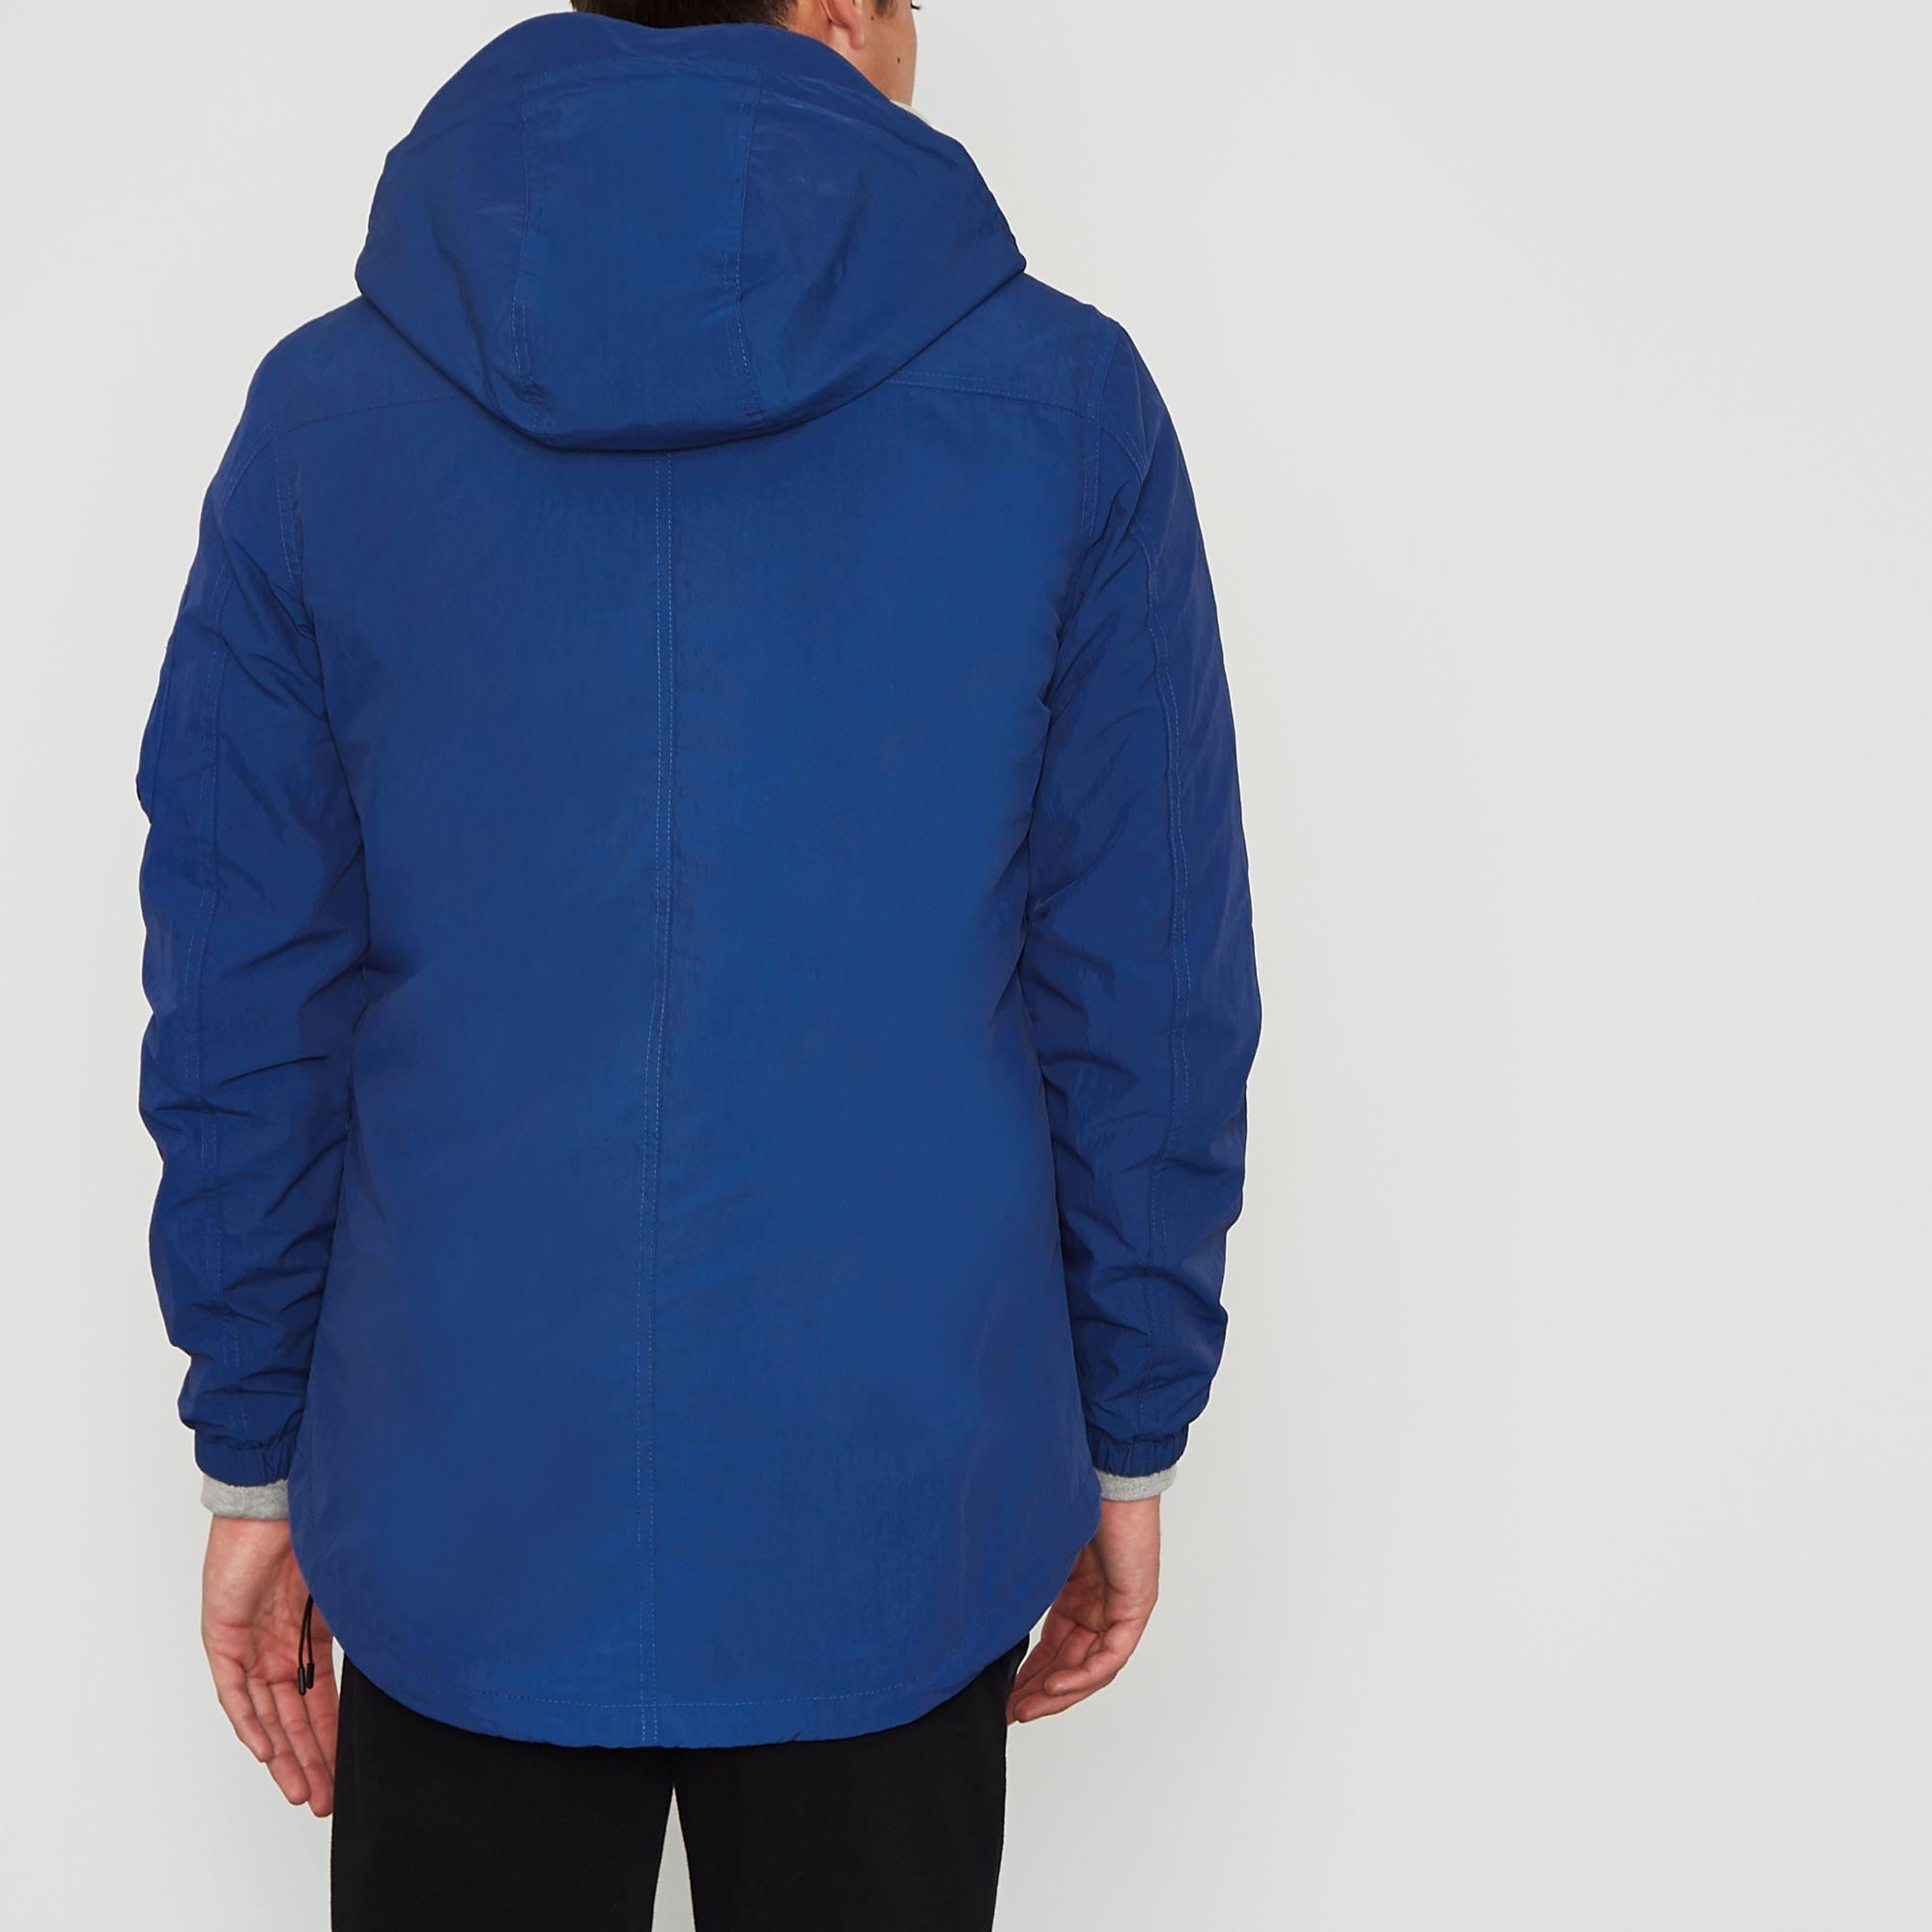 River Island Synthetic Blue Hooded Lightweight Jacket for Men